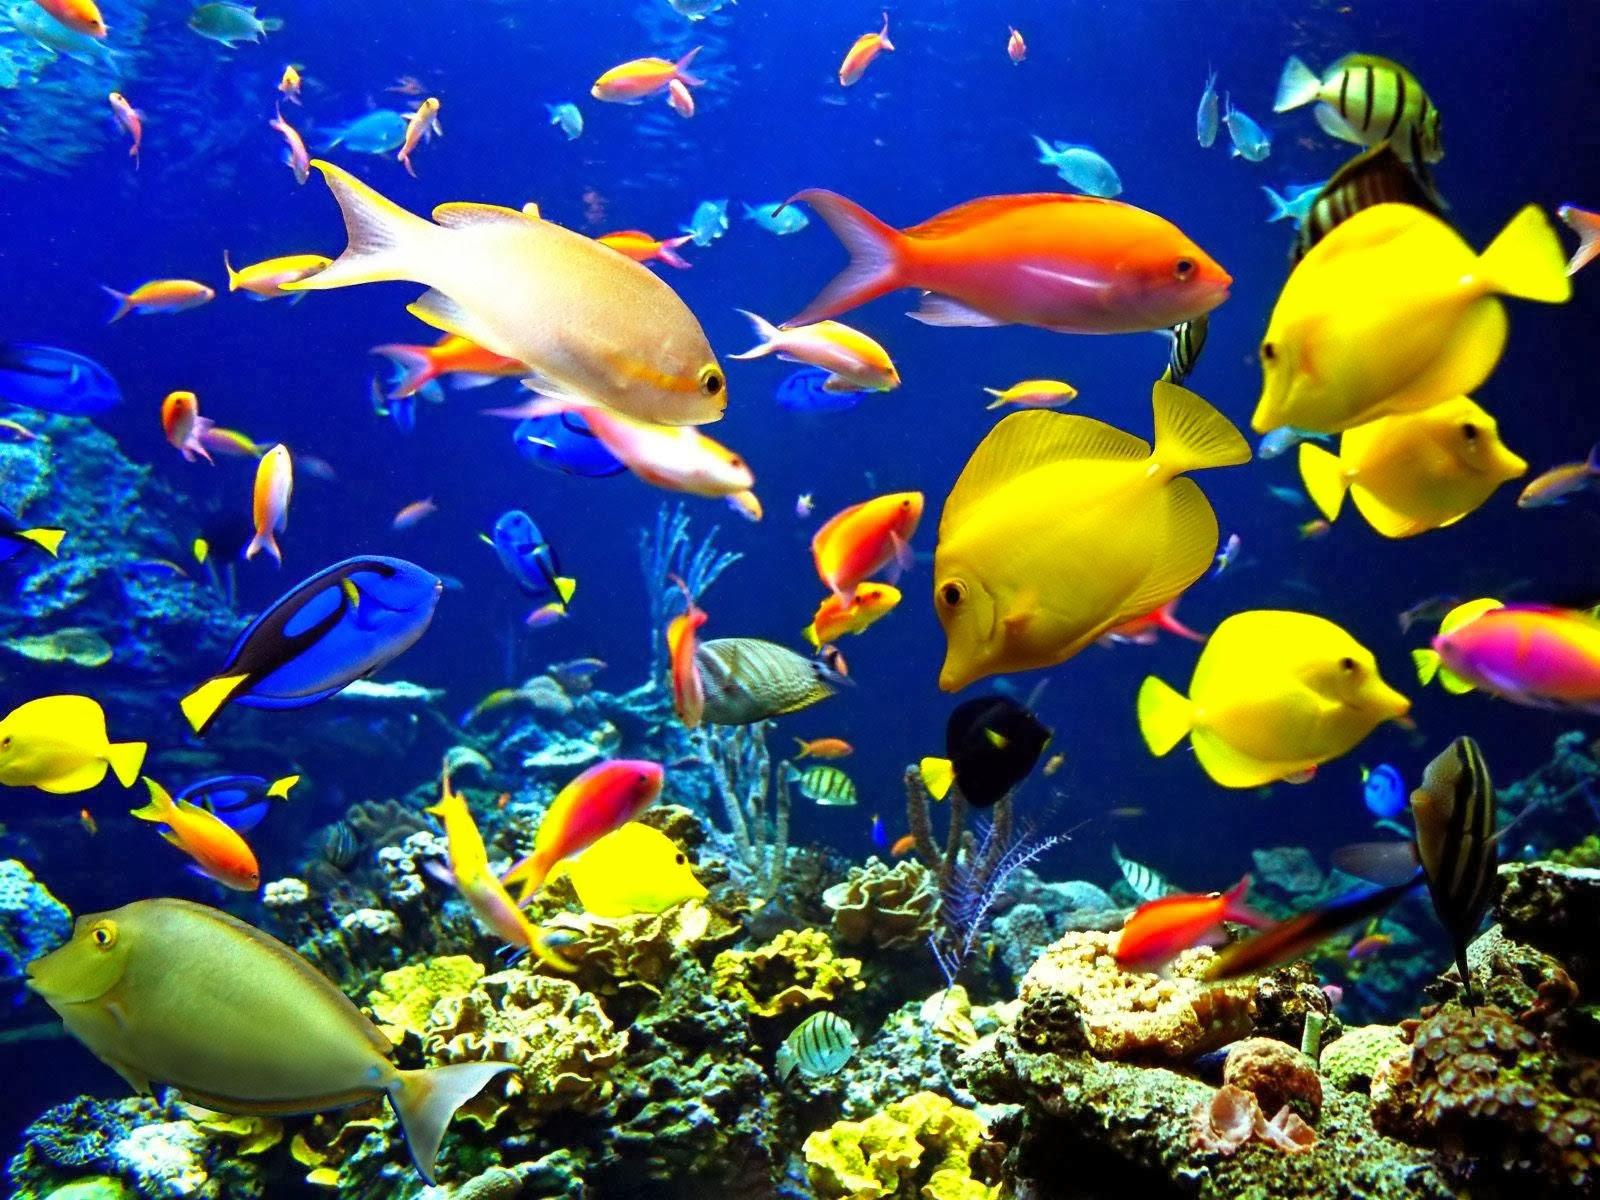 Aquarium Back Wallpapers Incredible Hd Aquarium Backgrounds